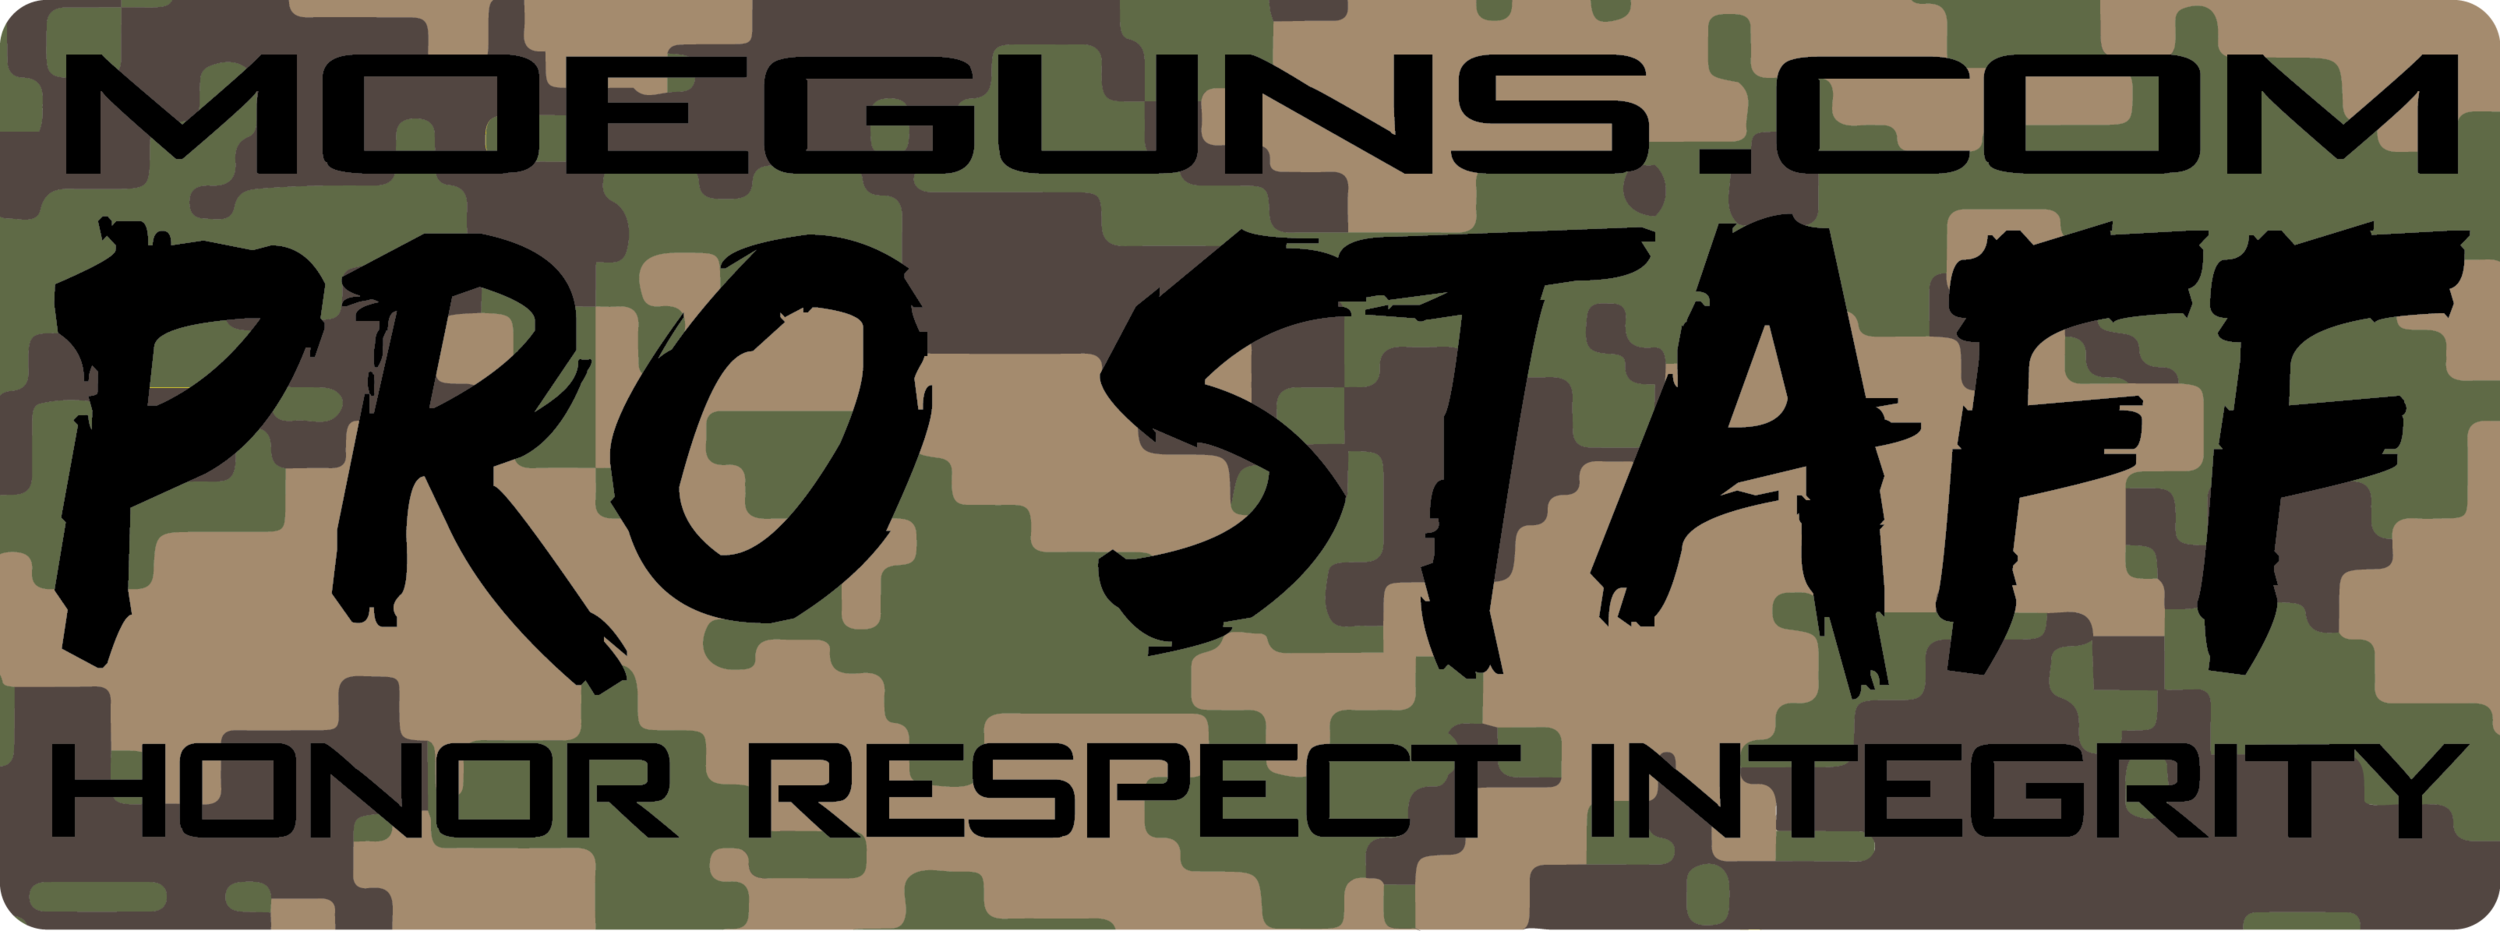 Exclusive Pro Staff Woodland Patch